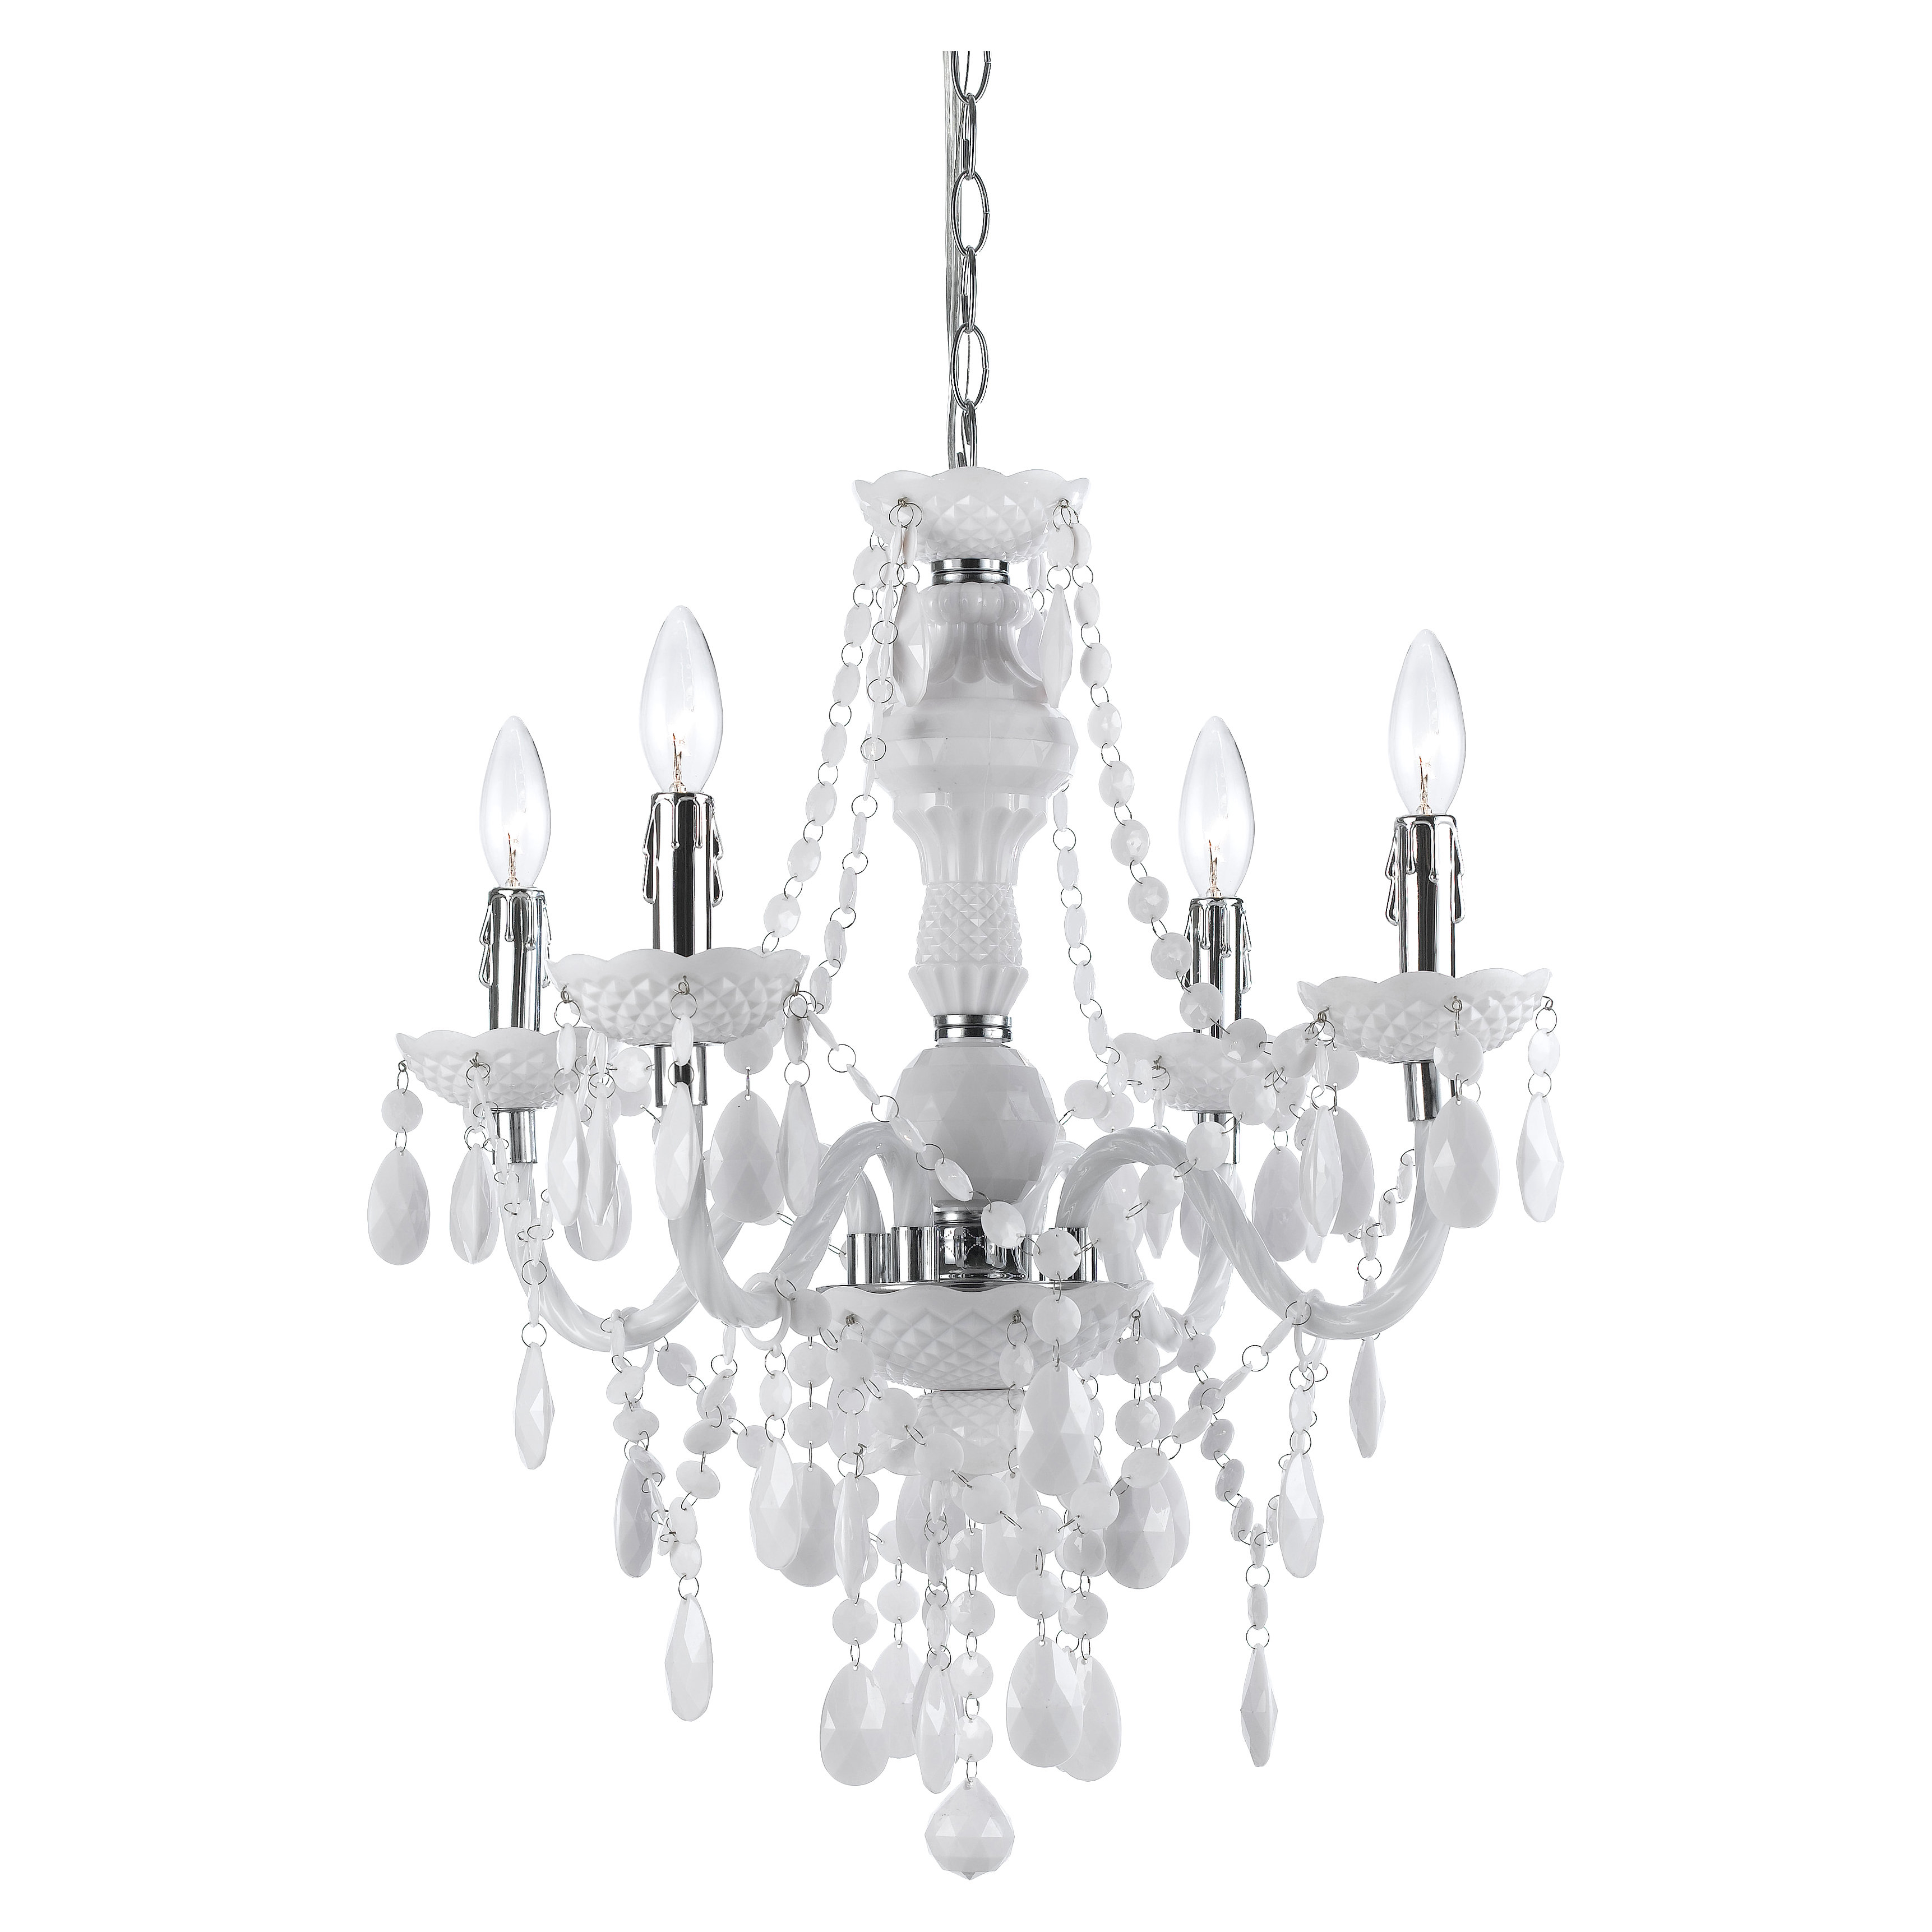 Geoffroy 4 Light Candle Style Chandelier With Regard To Aldora 4 Light Candle Style Chandeliers (View 6 of 30)